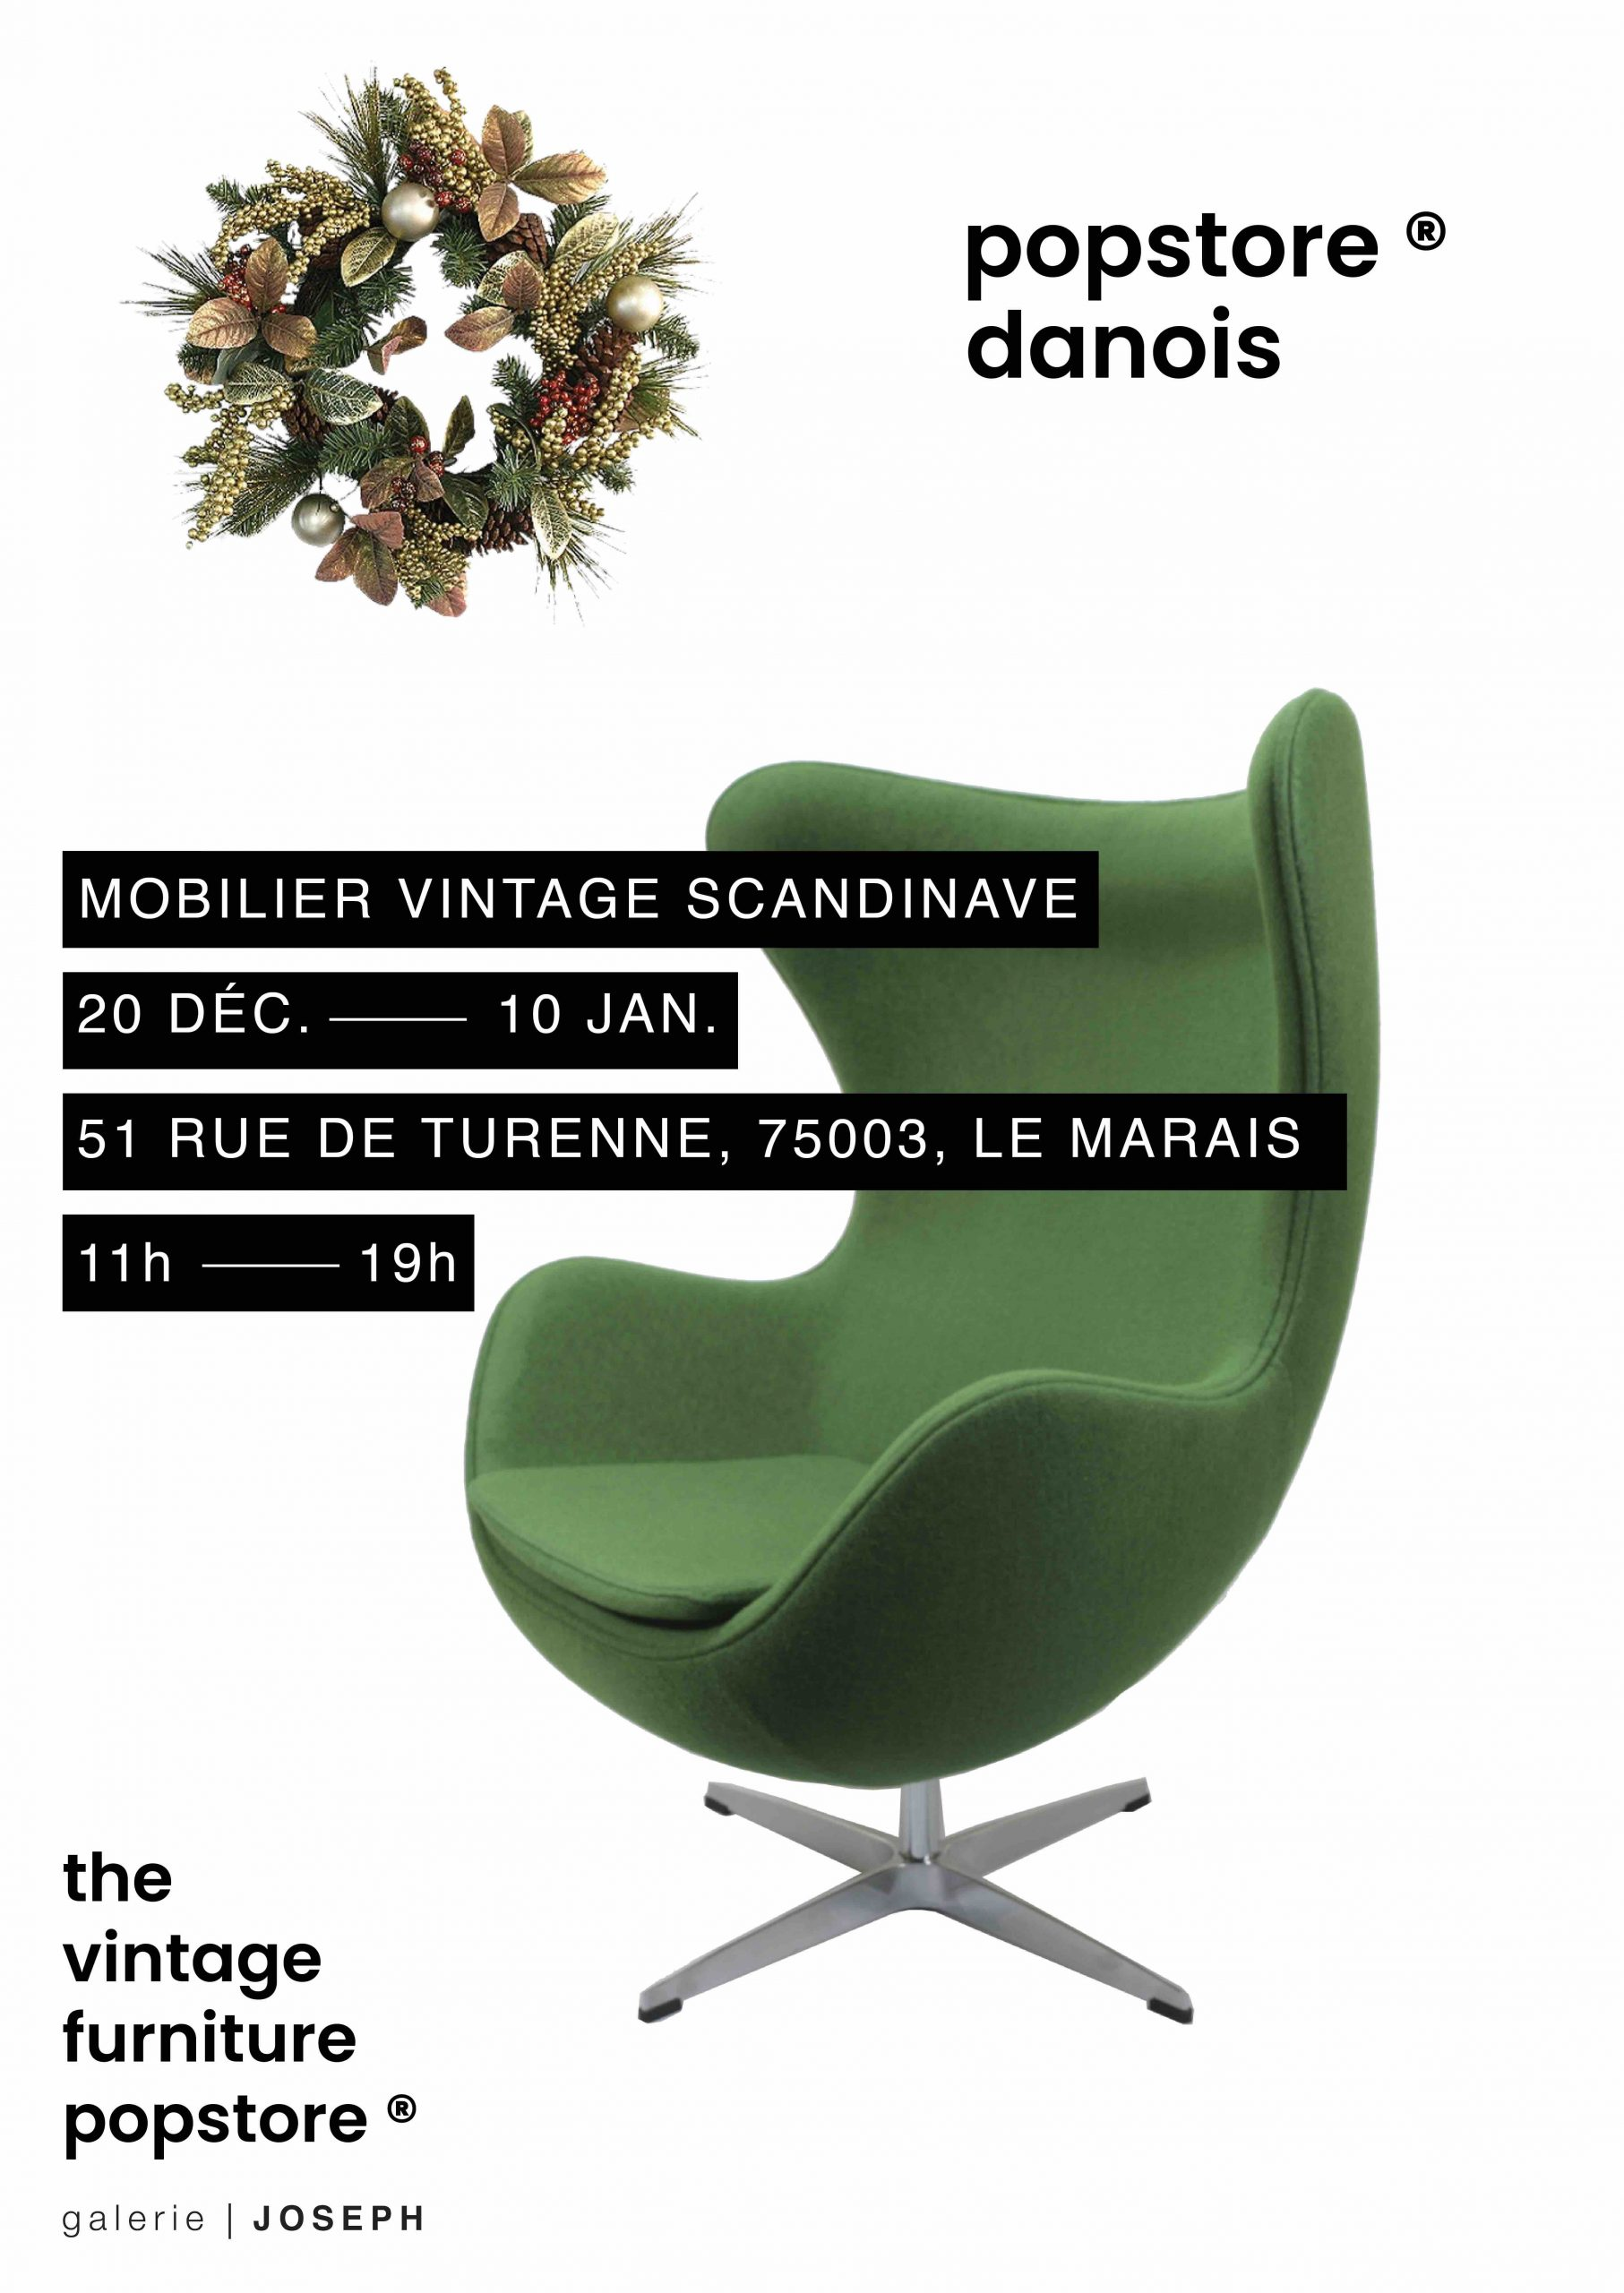 Noël Pop-up danois